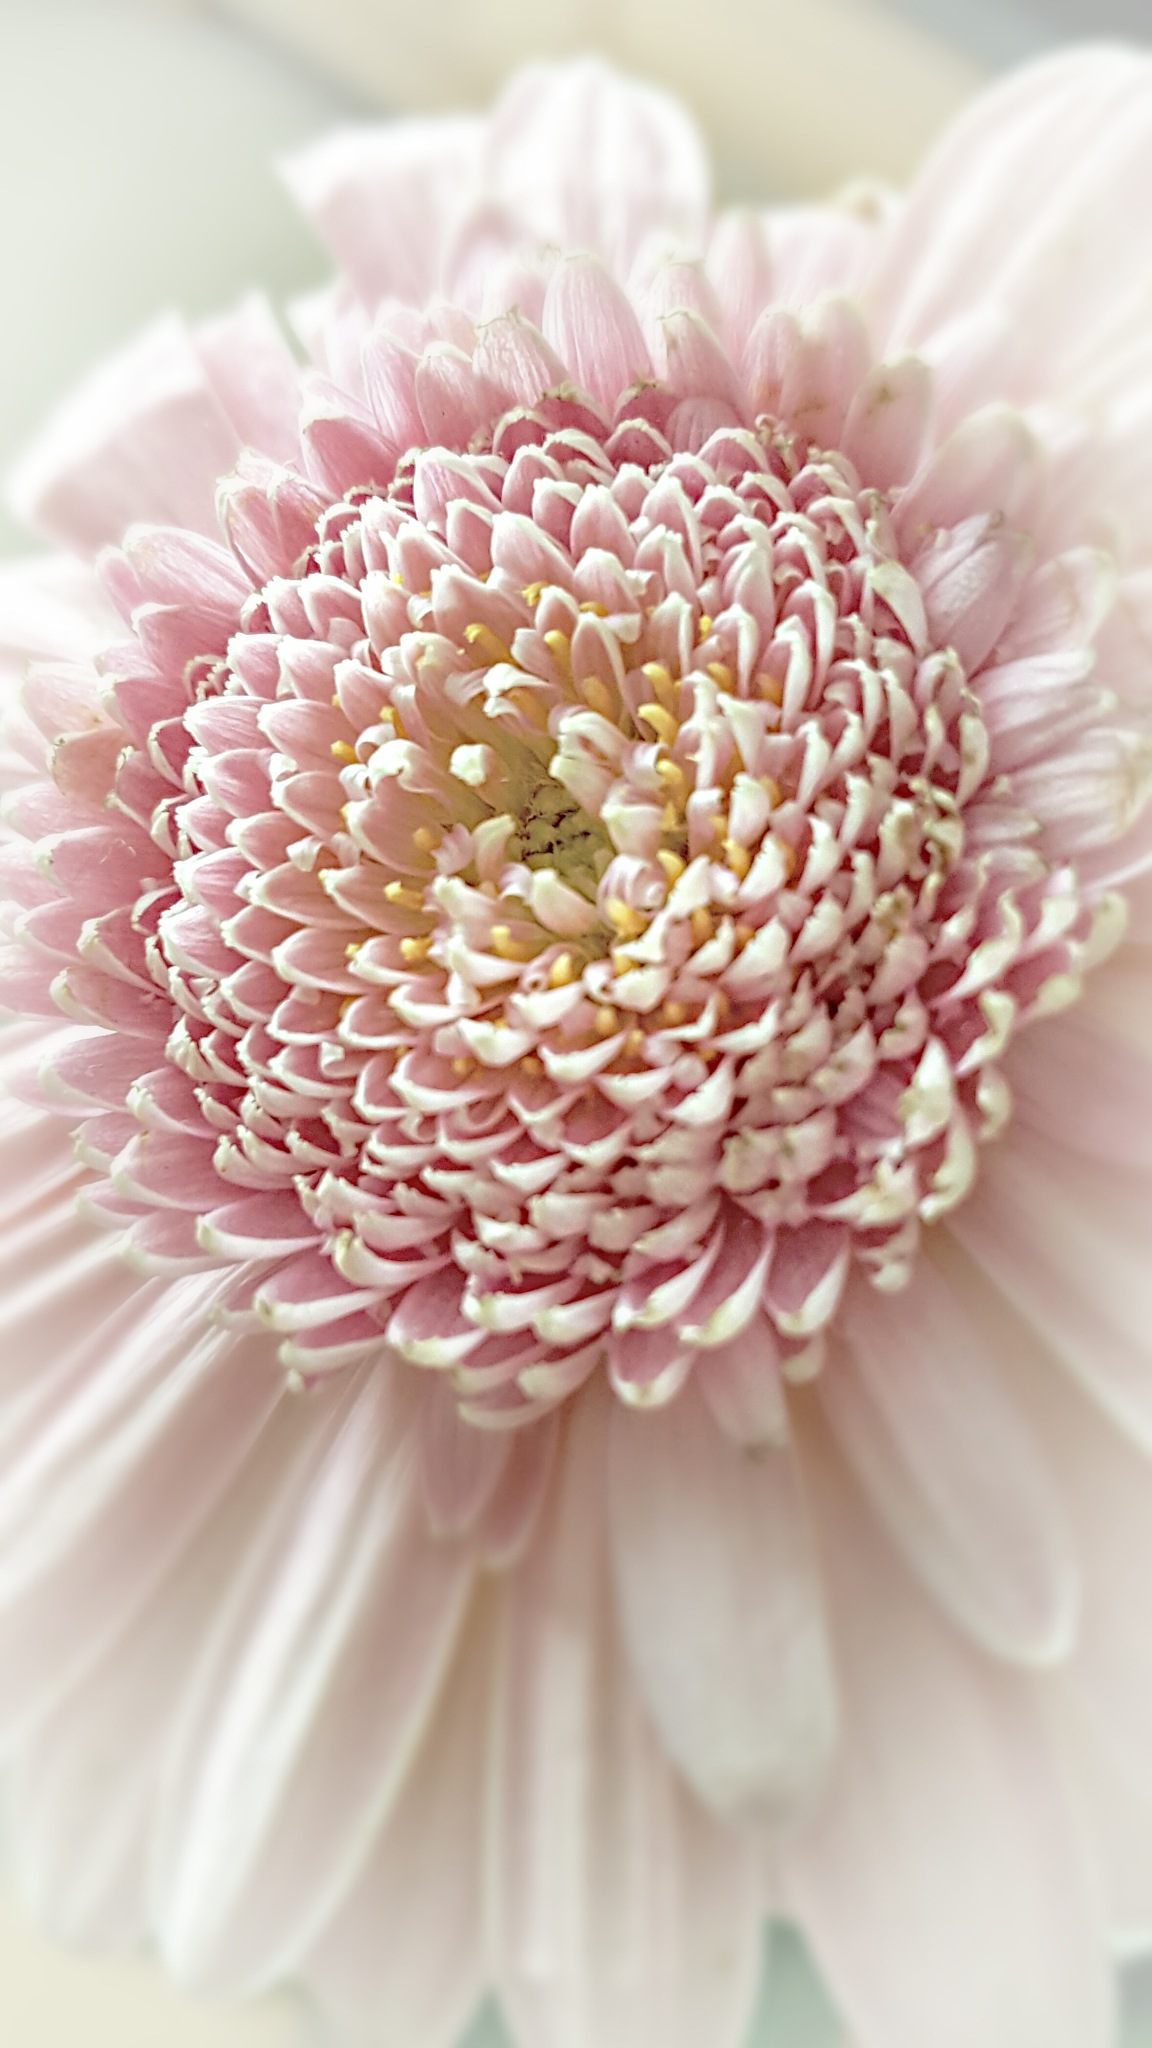 Flower Detail by Yvonne Lewis